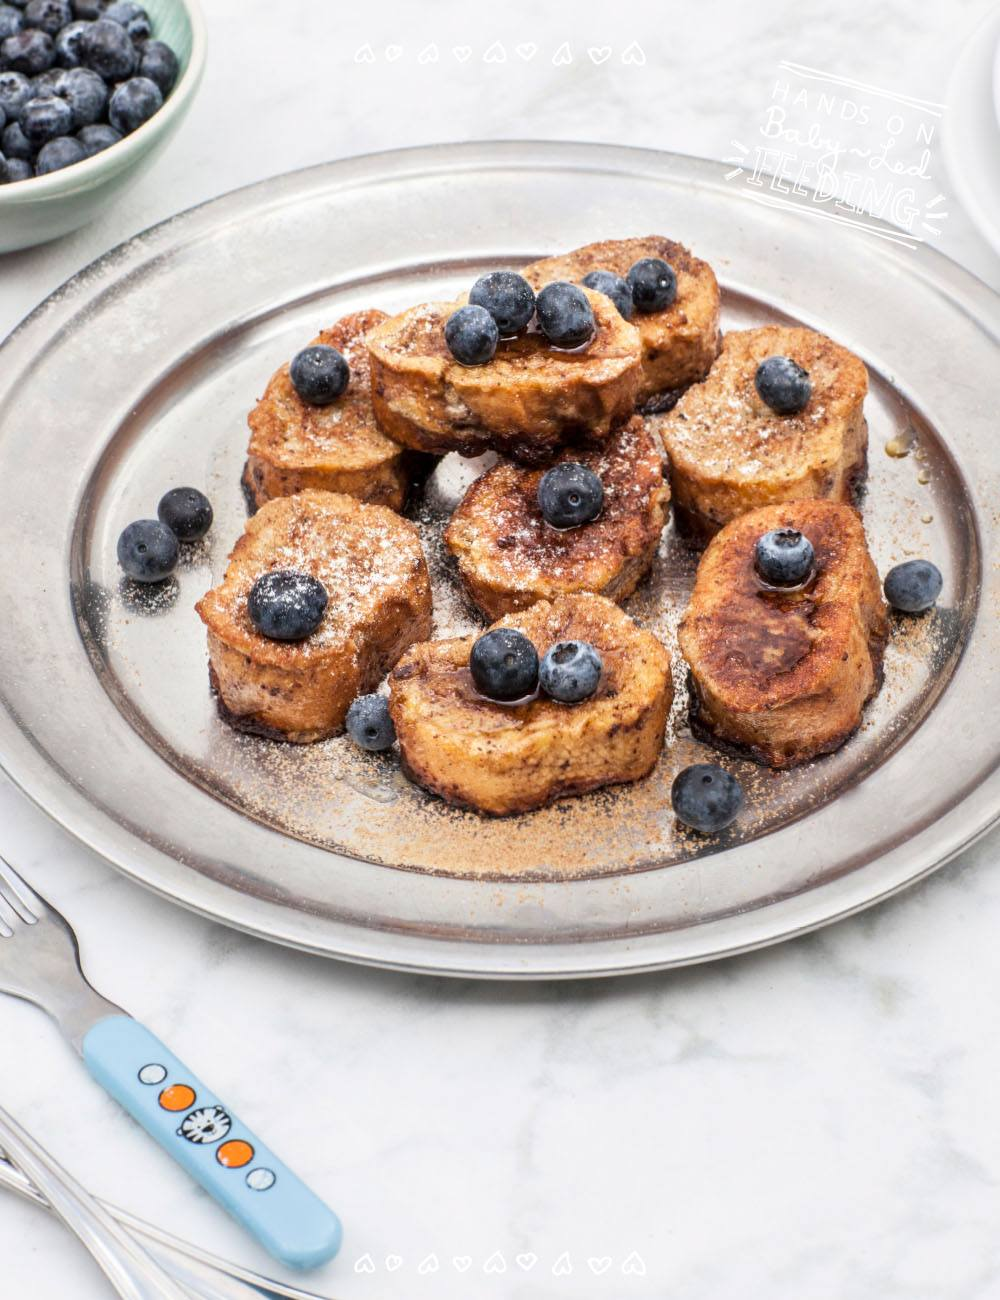 Baby led feeding has great ideas to get your kids to eat better especially breakfast recipe for blw. Full recipe image for recipe page. These Healthy Baby French Toasties with Blueberries are refined sugar free, easy to make and taste so yummy.